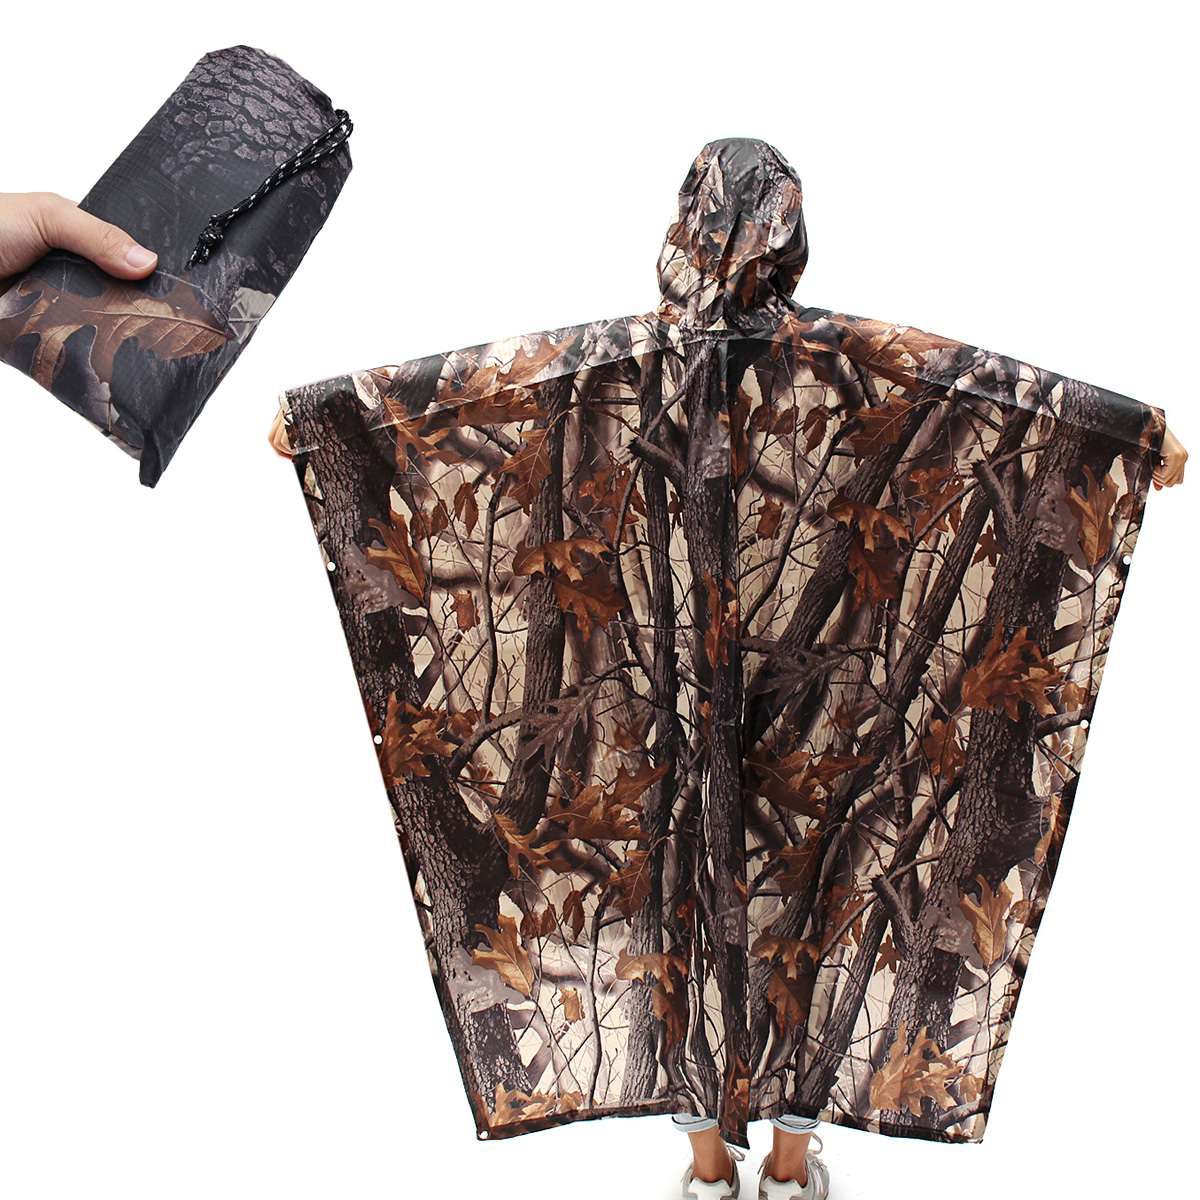 220x145CM 3 In 1 outdoor camping survival Military Travel Camouflage hiking Poncho Backpack Rain Cover Waterproof tent mat outlife new style professional military tactical multifunction shovel outdoor camping survival folding spade tool equipment